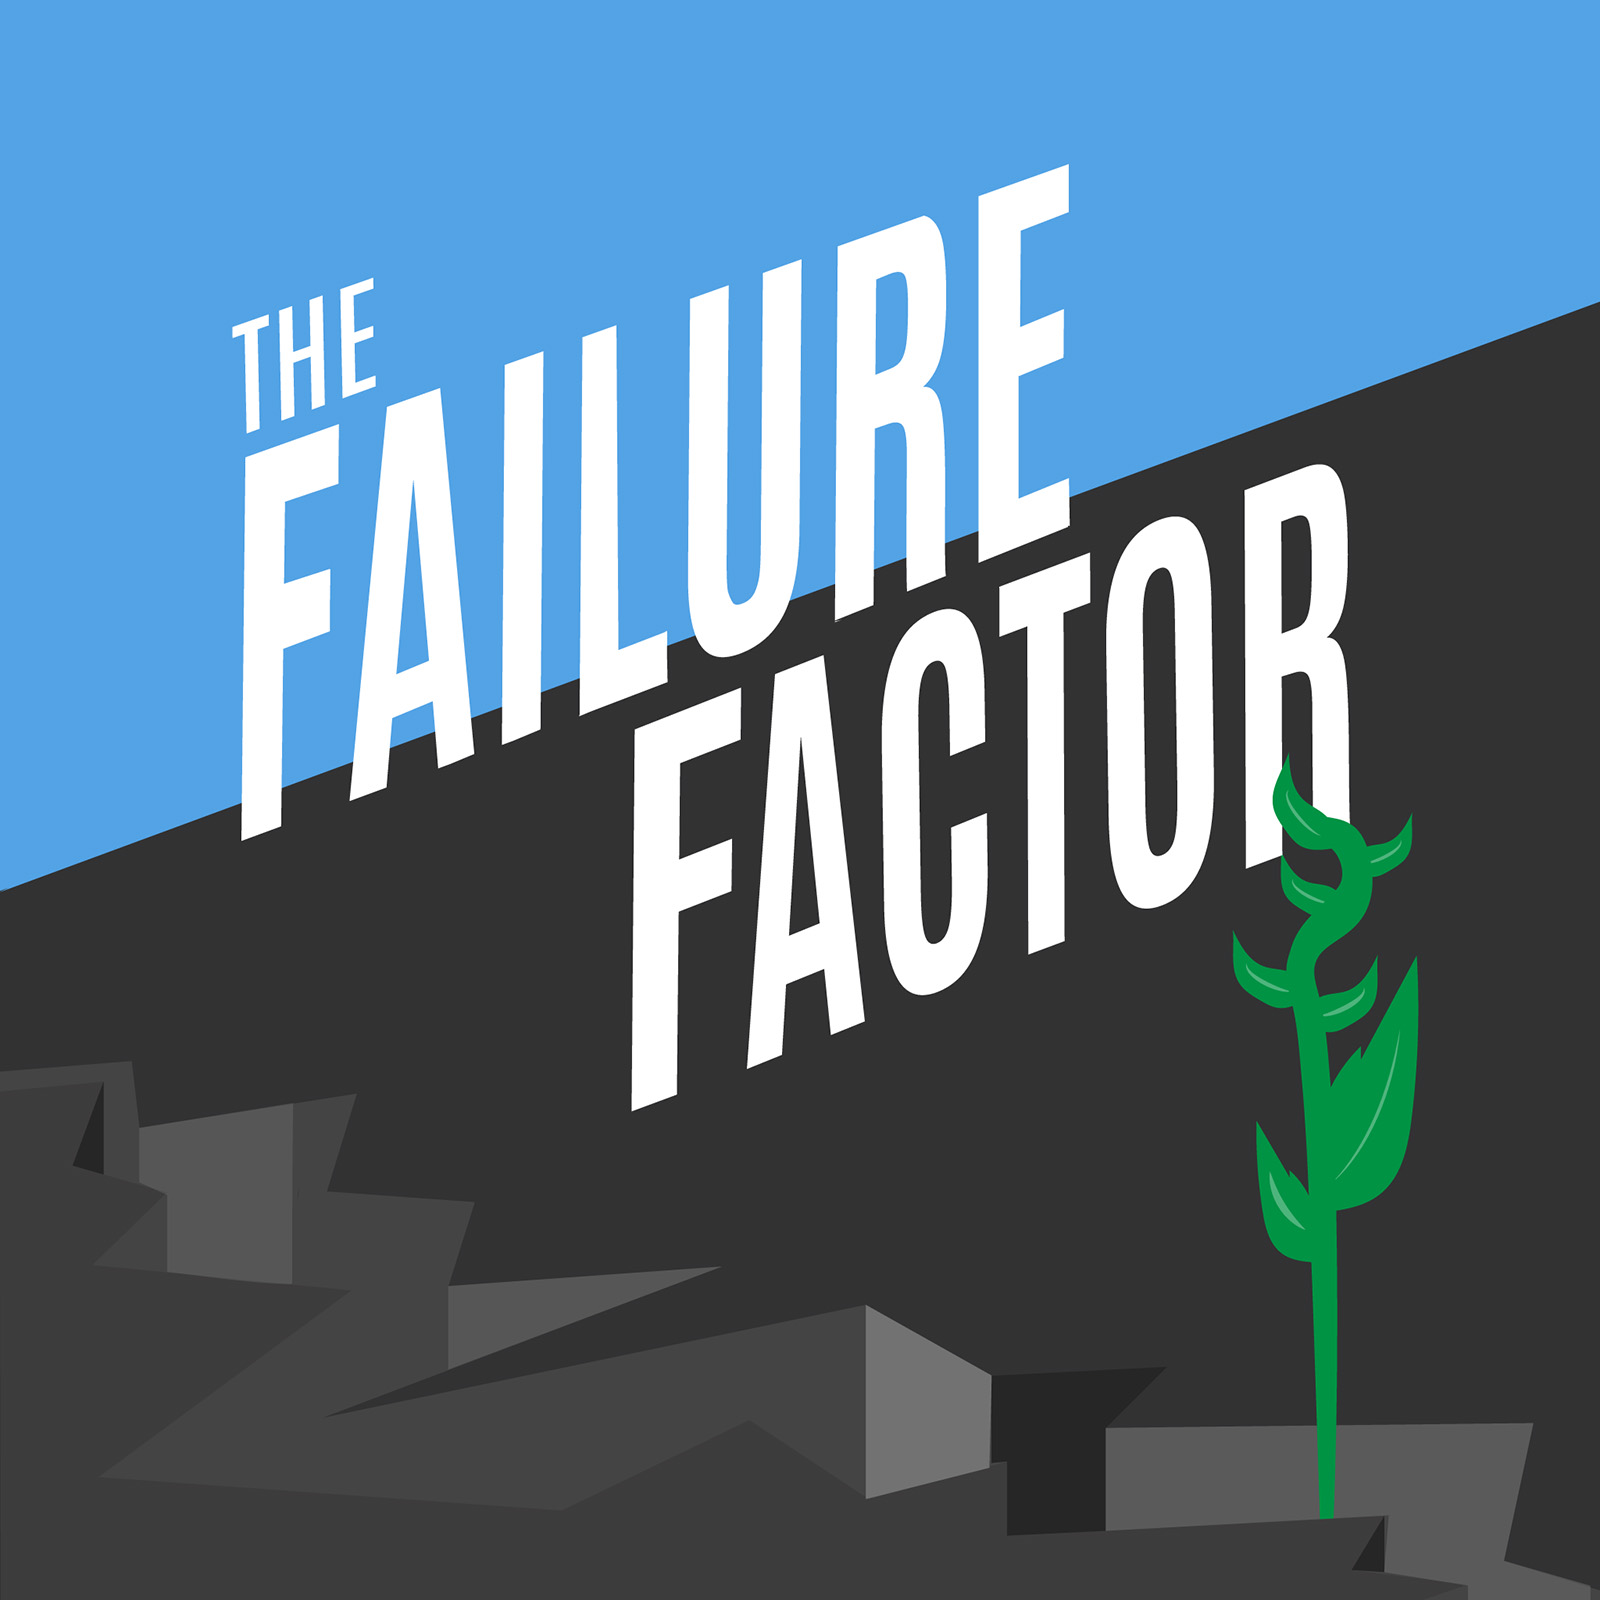 The Failure Factor Episode 29: The League Dating App Founder Amanda Bradford on Having Difficult Conversations And Getting Comfortable With Rejection